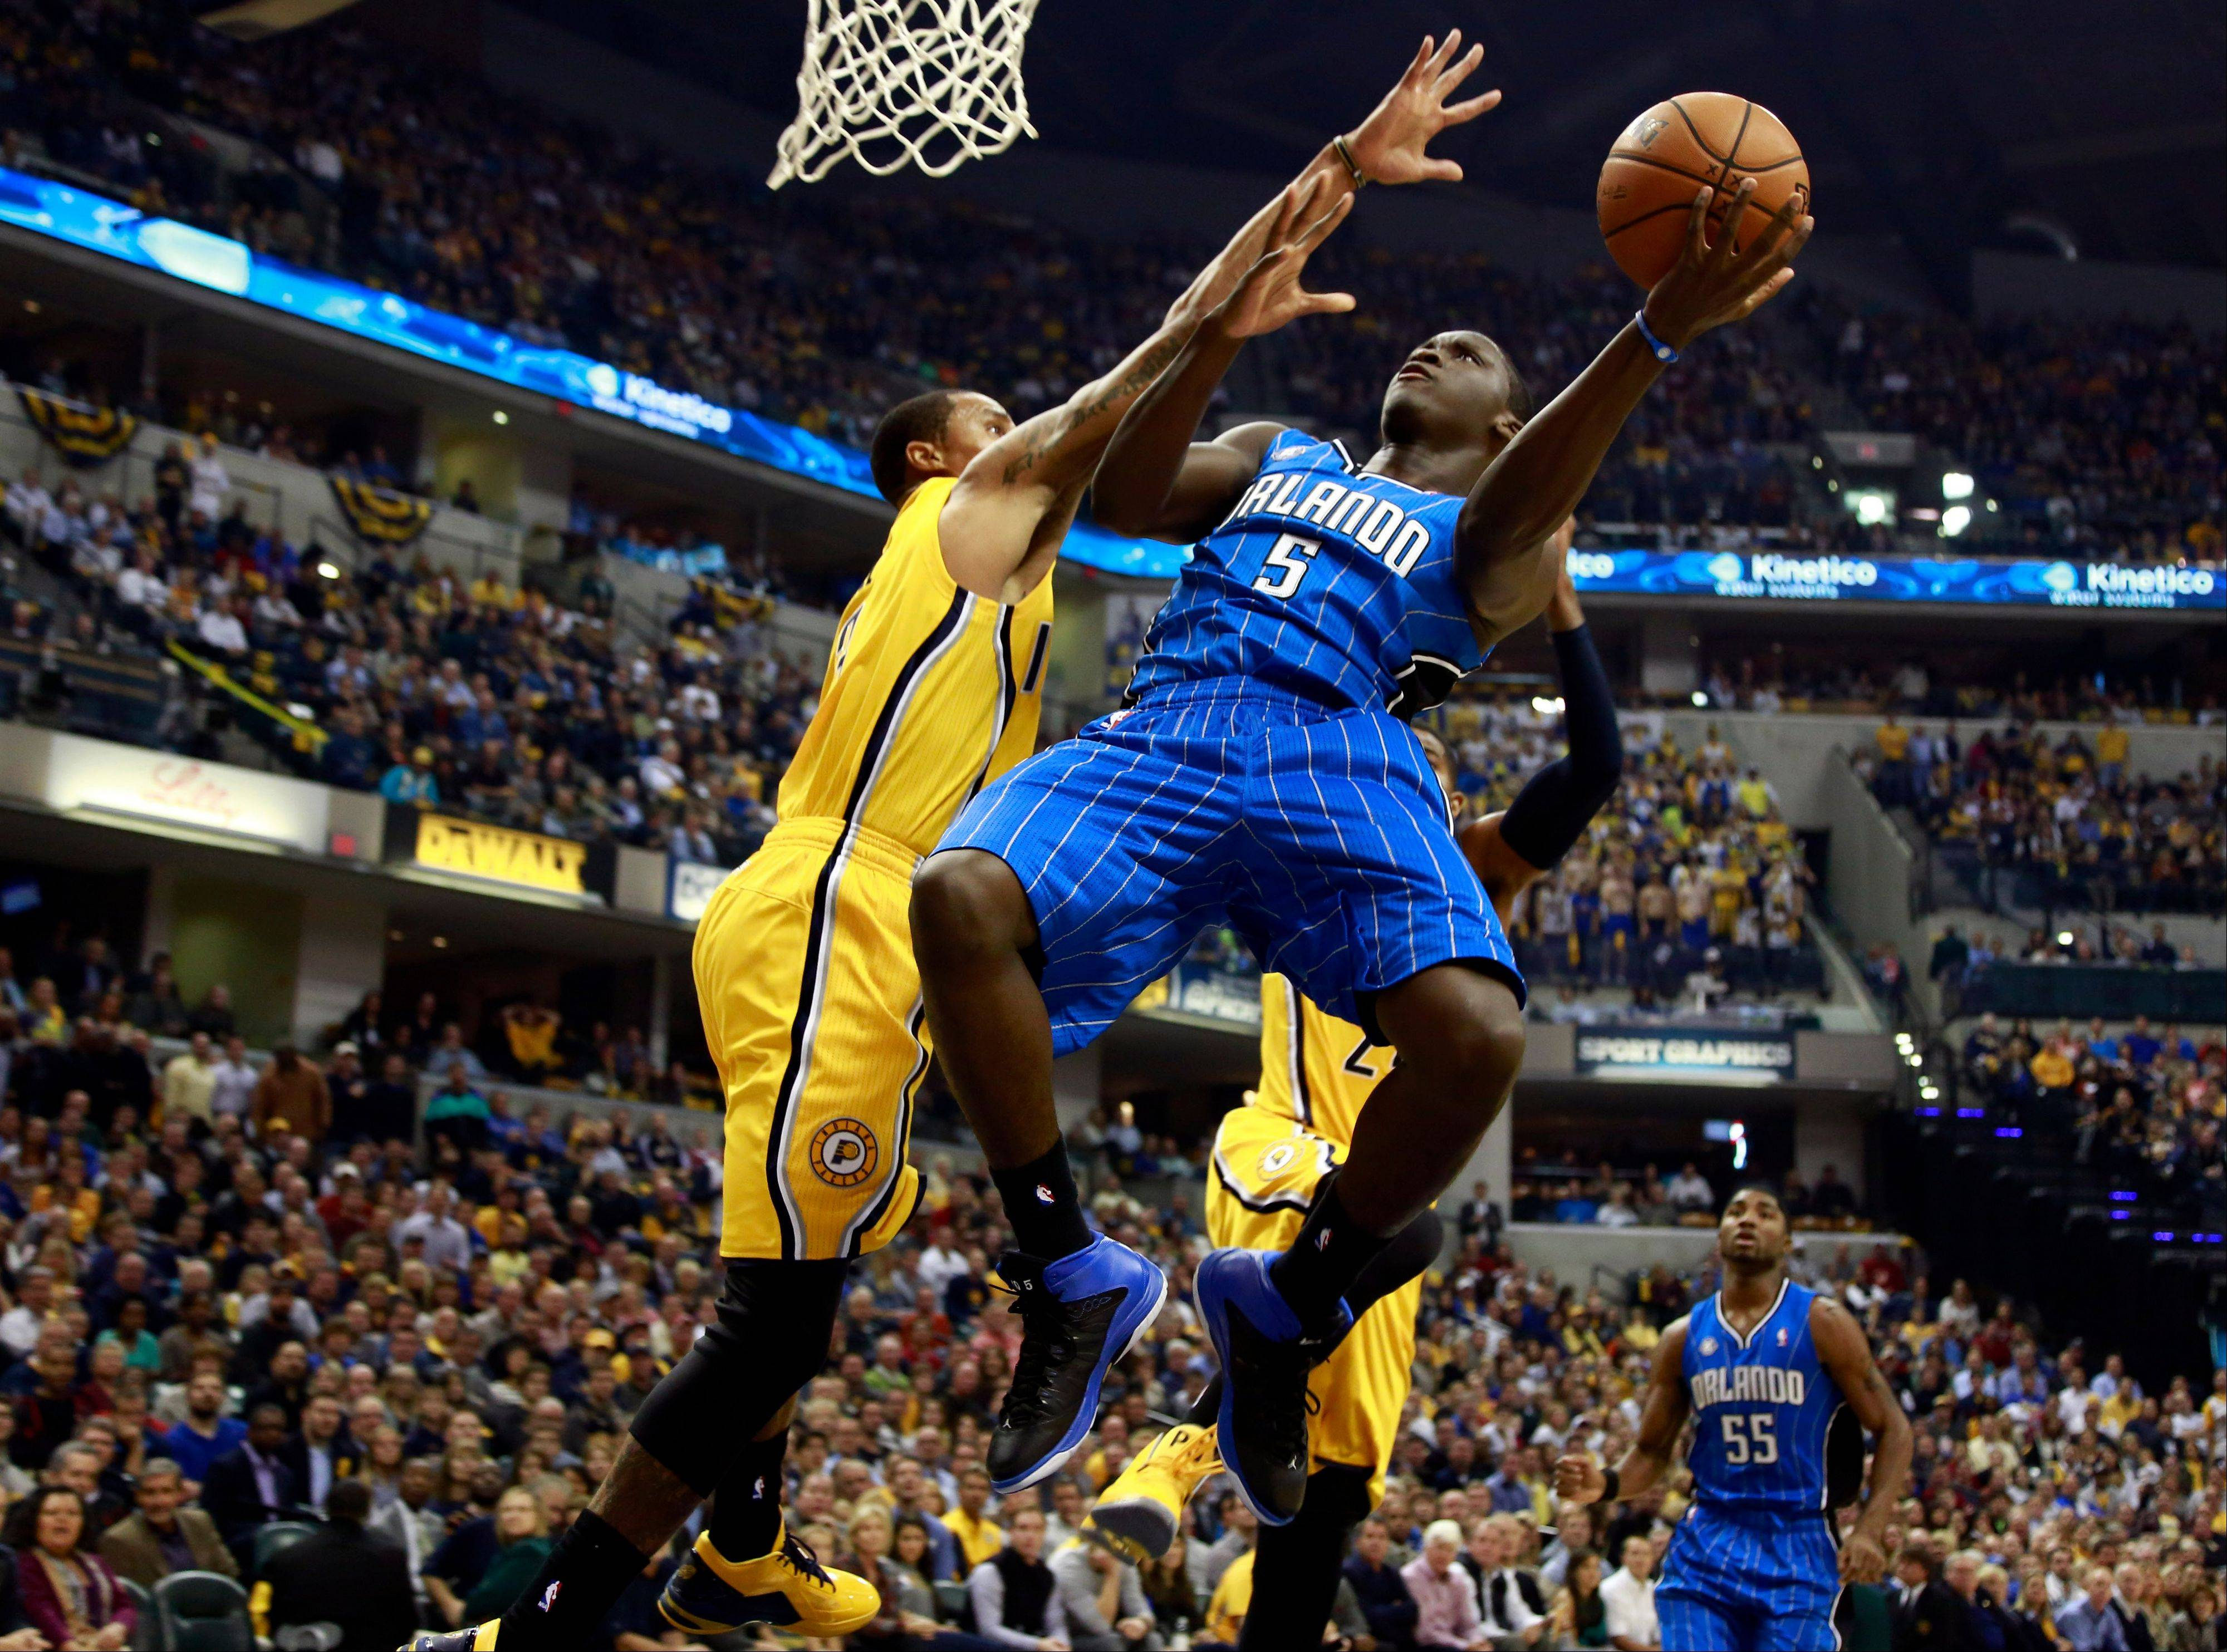 Orlando Magic guard Victor Oladipo (5) puts up a shot while defended by Indiana Pacers guard George Hill in the first half of an NBA basketball game Tuesday in Indianapolis.